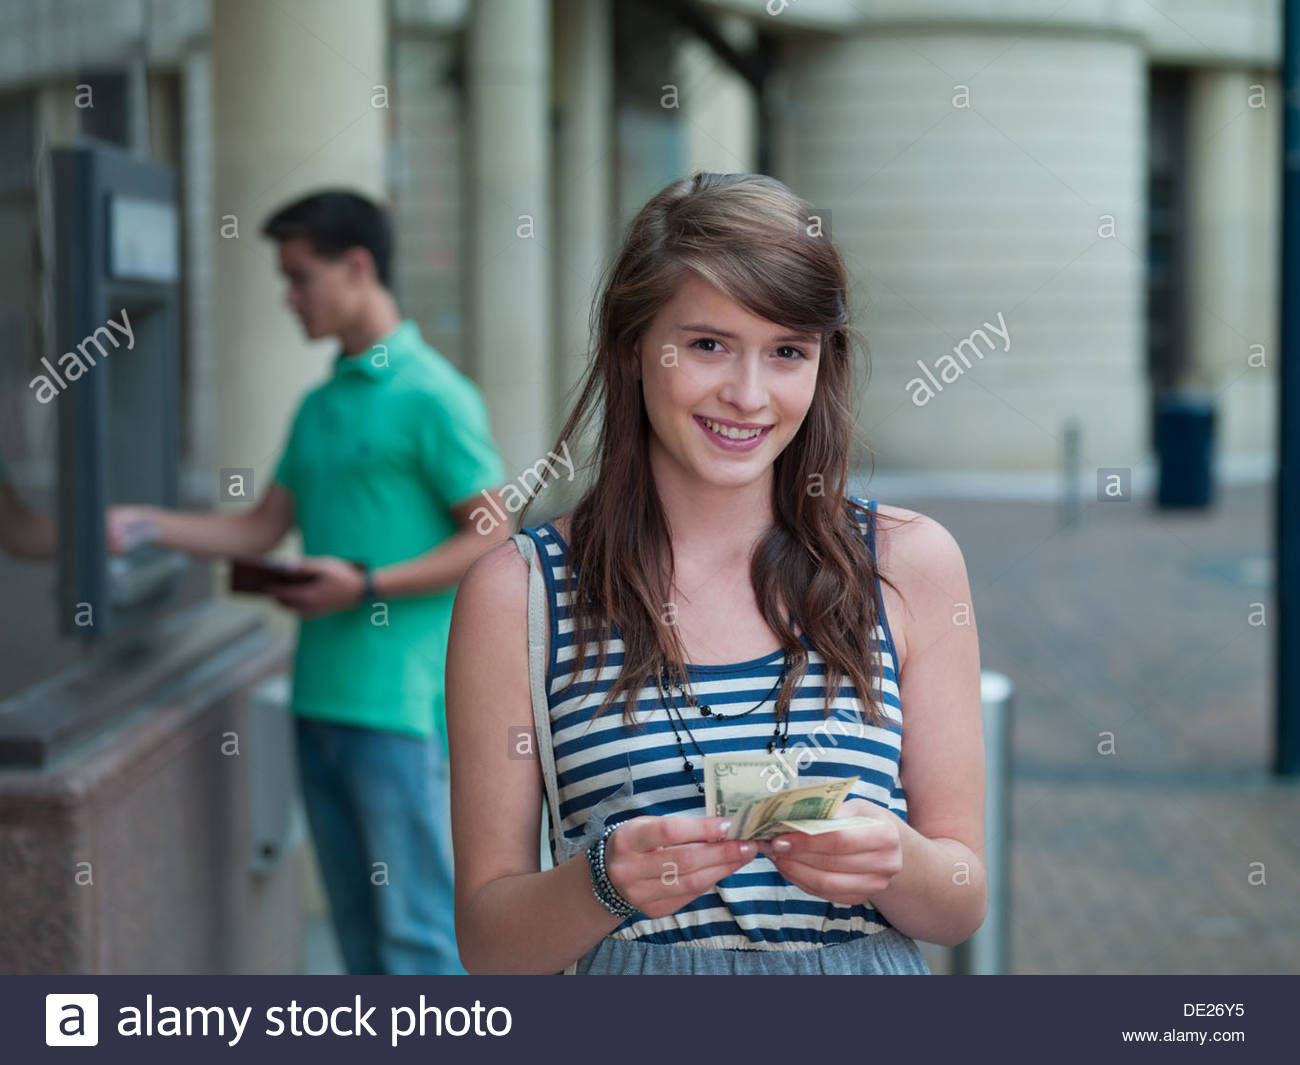 Happy girl holding money near ATM machine - Stock Image